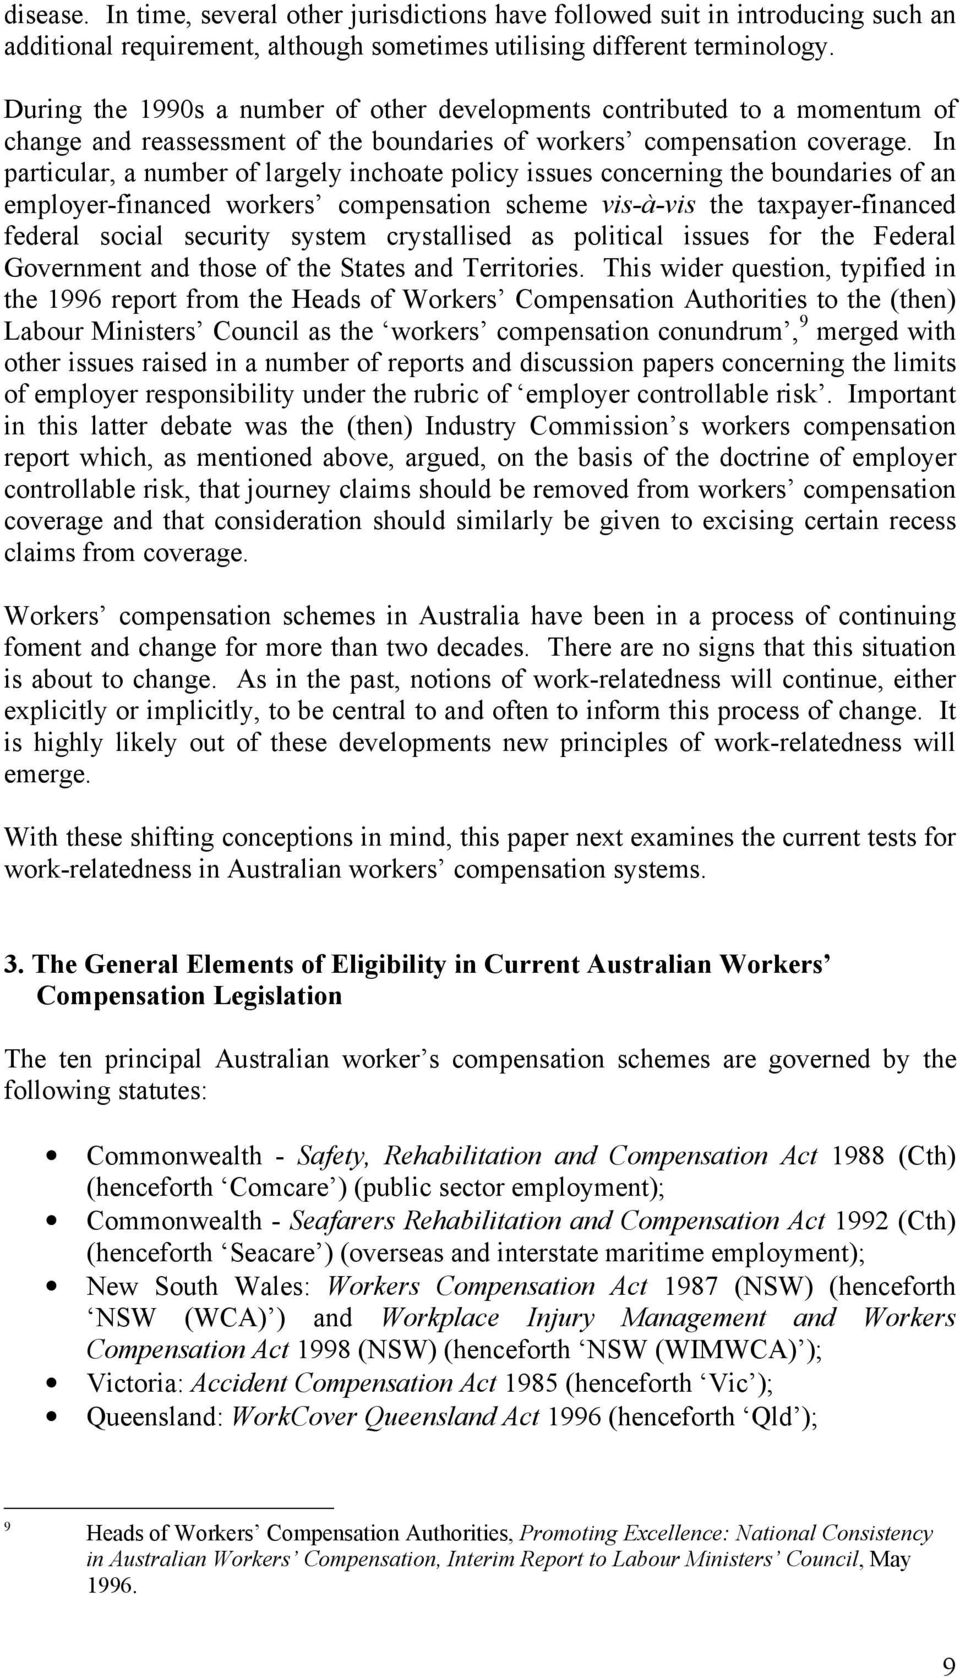 In particular, a number of largely inchoate policy issues concerning the boundaries of an employer-financed workers compensation scheme vis-à-vis the taxpayer-financed federal social security system